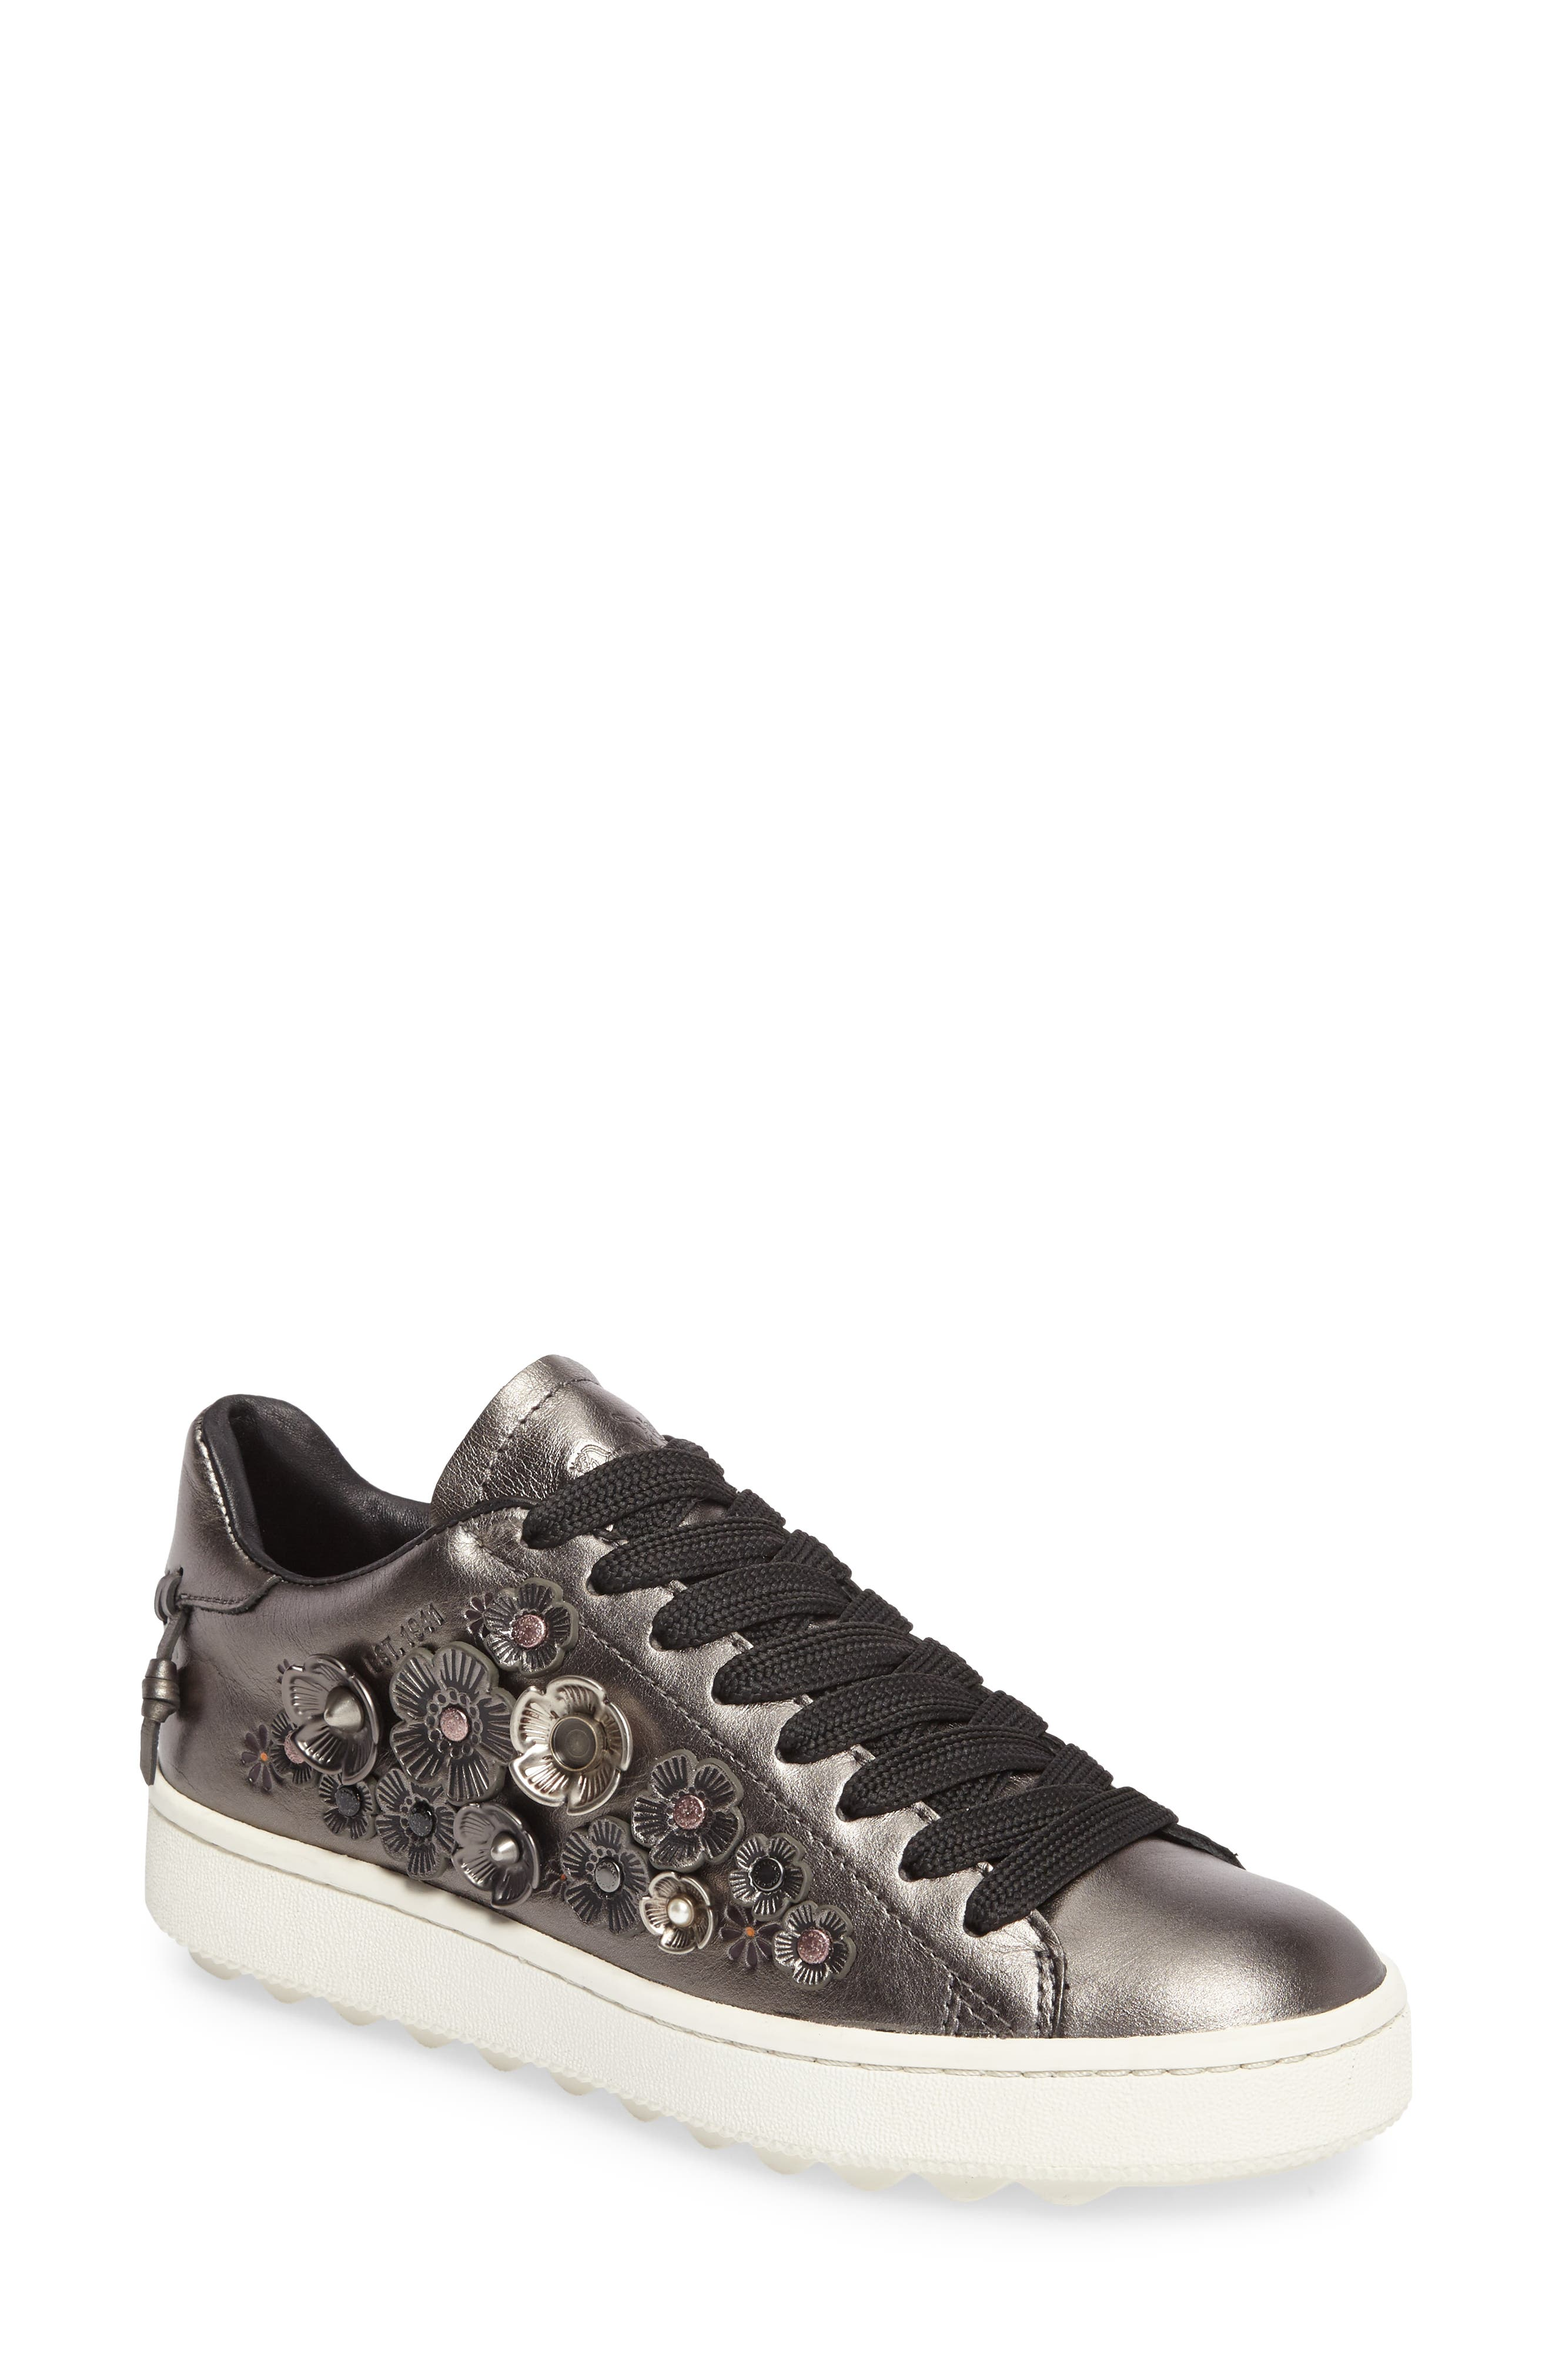 Tea Rose Metallic Sneaker,                         Main,                         color, Gunmetal Leather